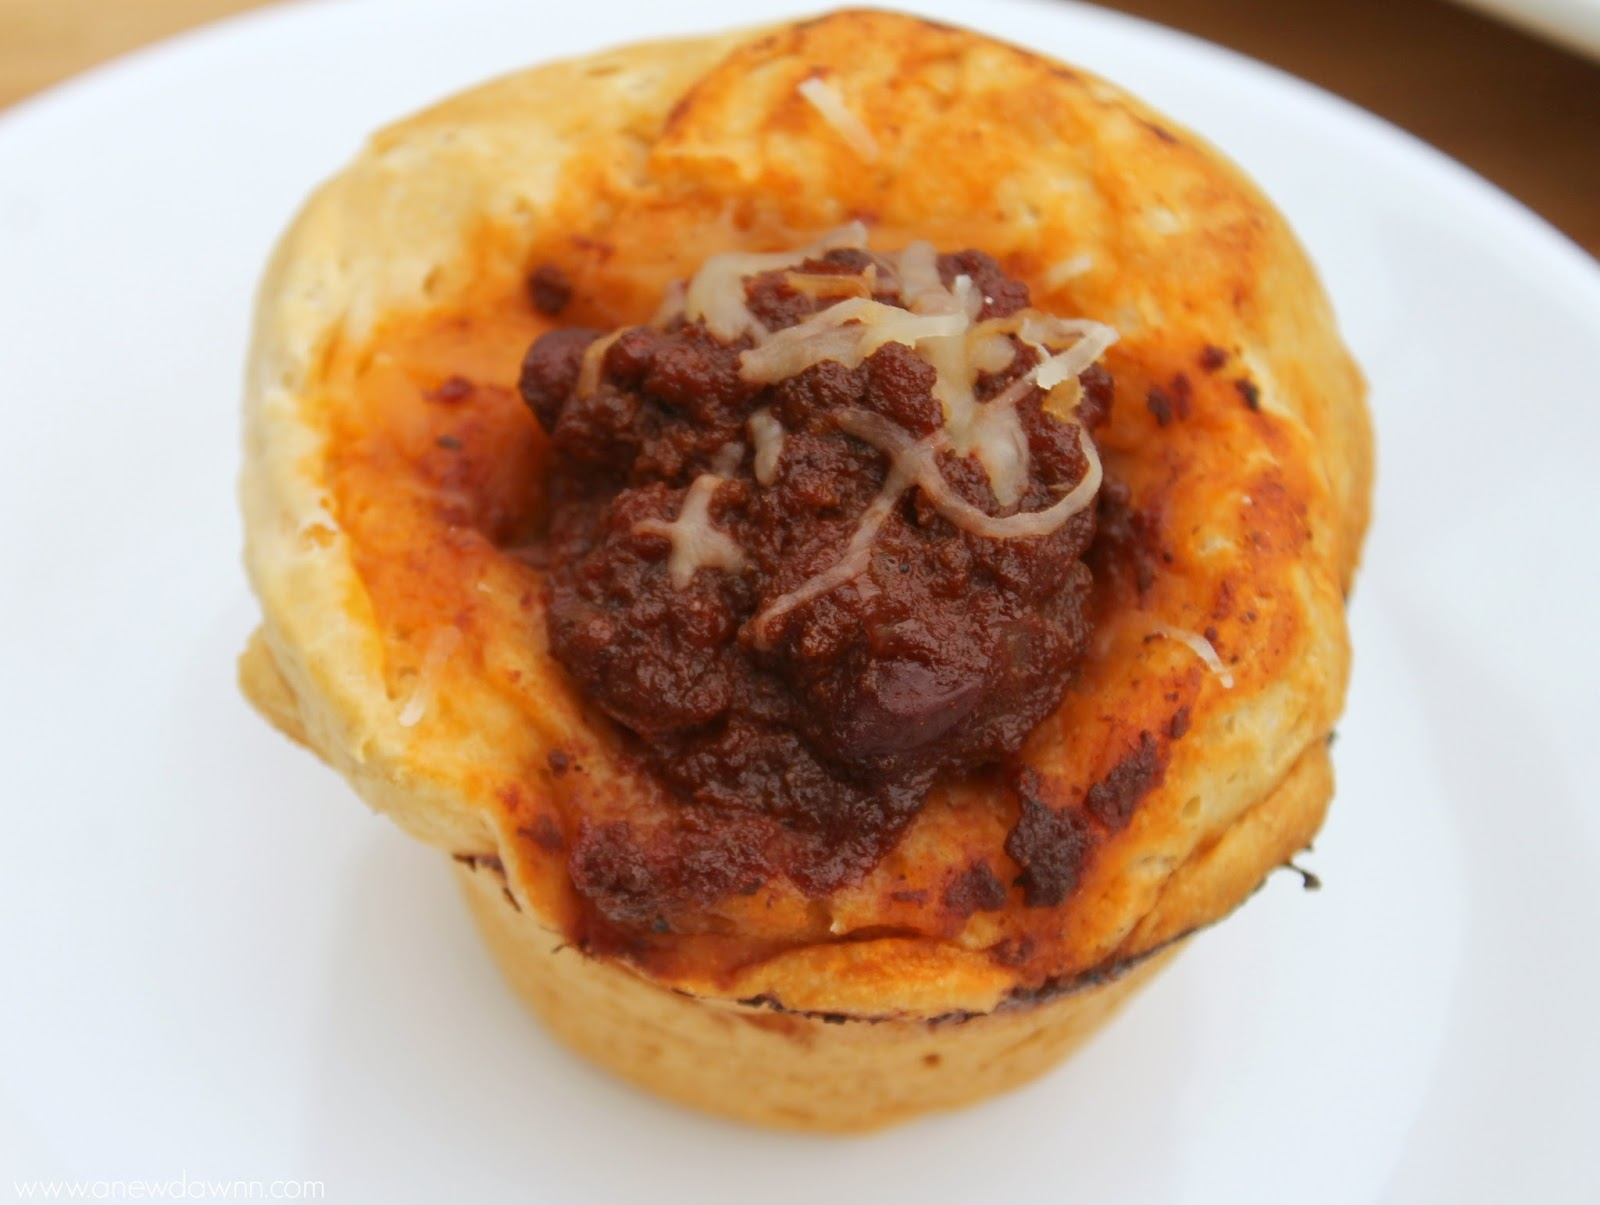 Chili Biscuits